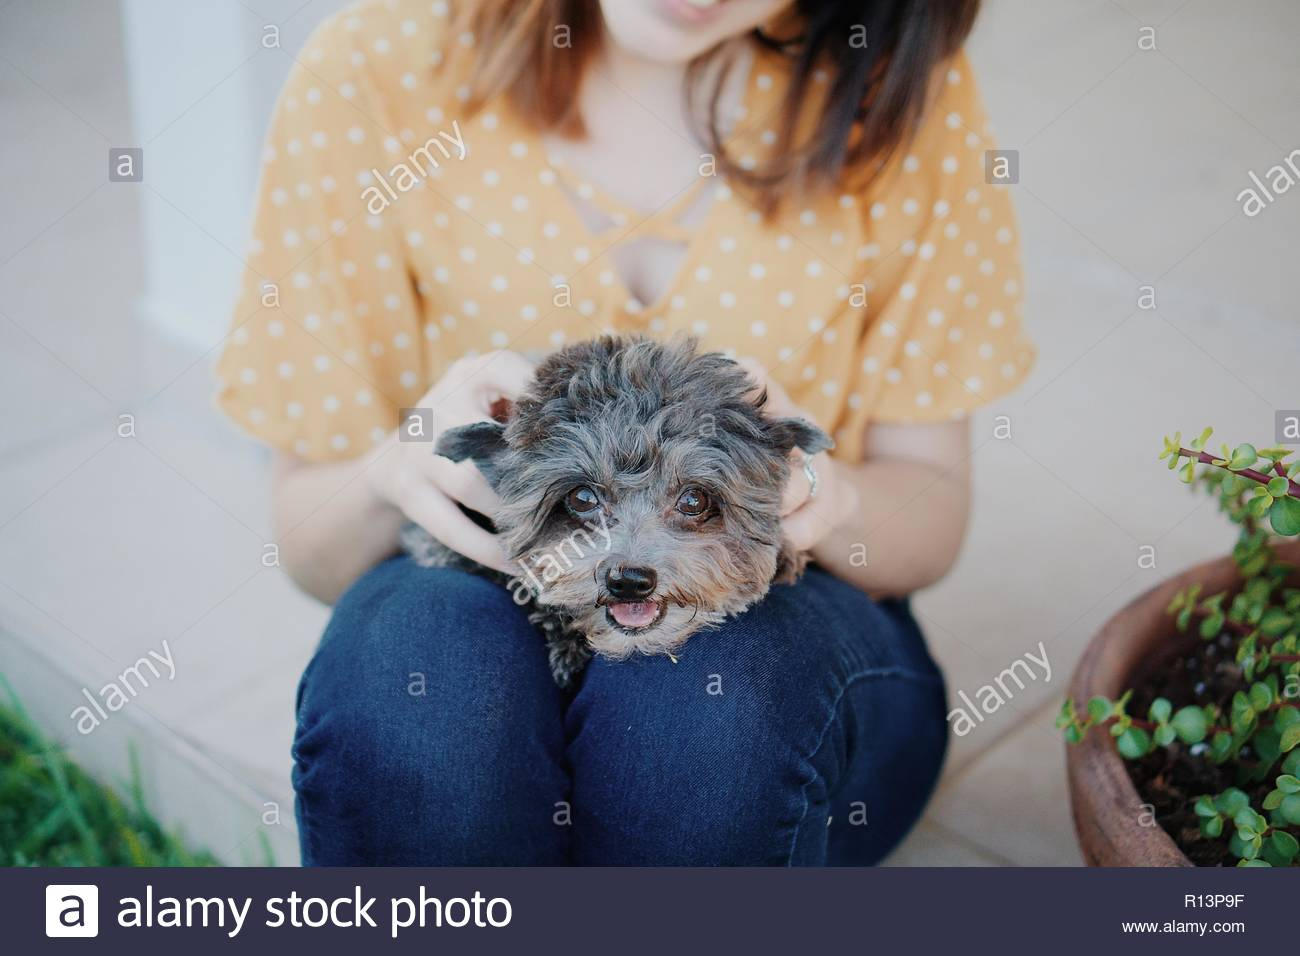 Midsection of a woman sitting with her dog - Stock Image